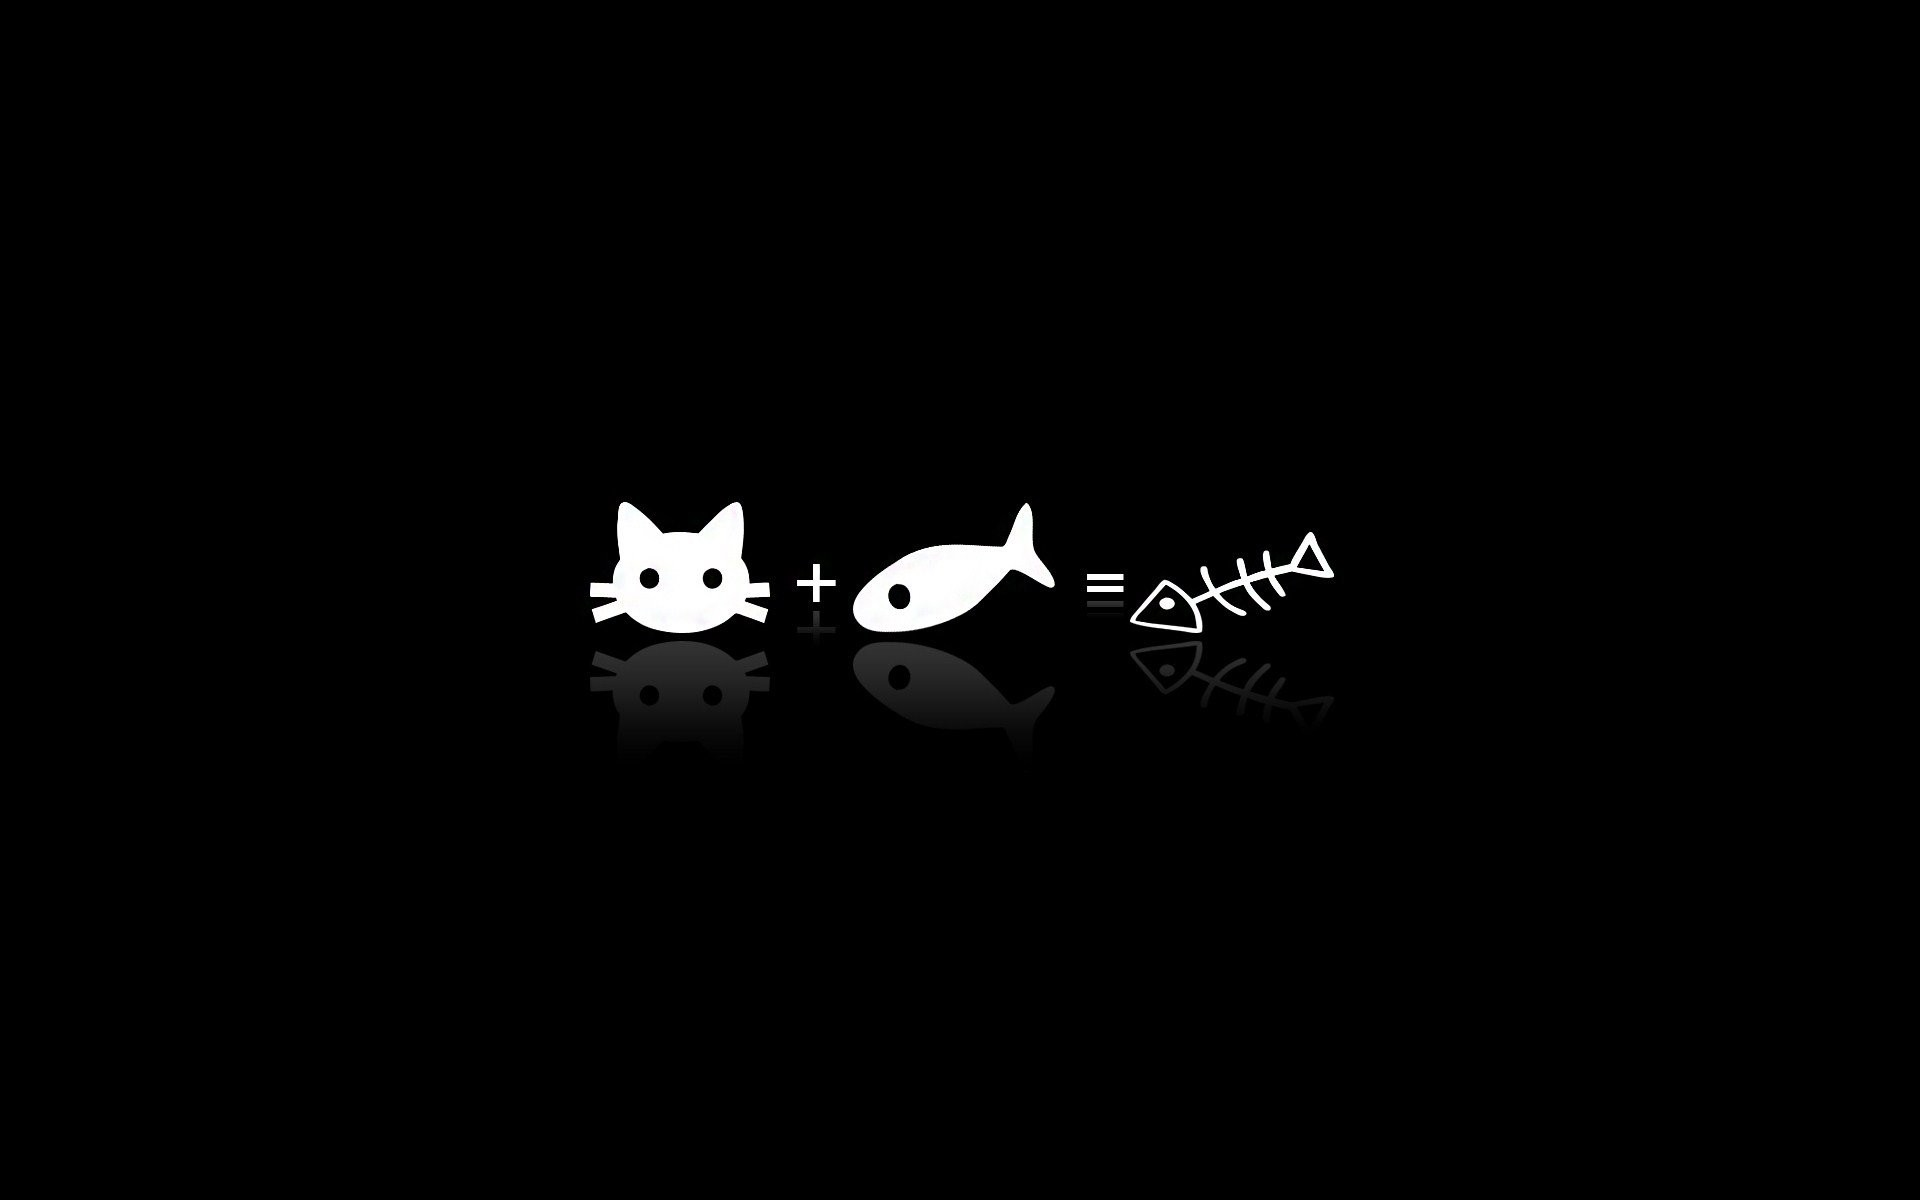 Cute Cartoon Cat Wallpaper 71 Images